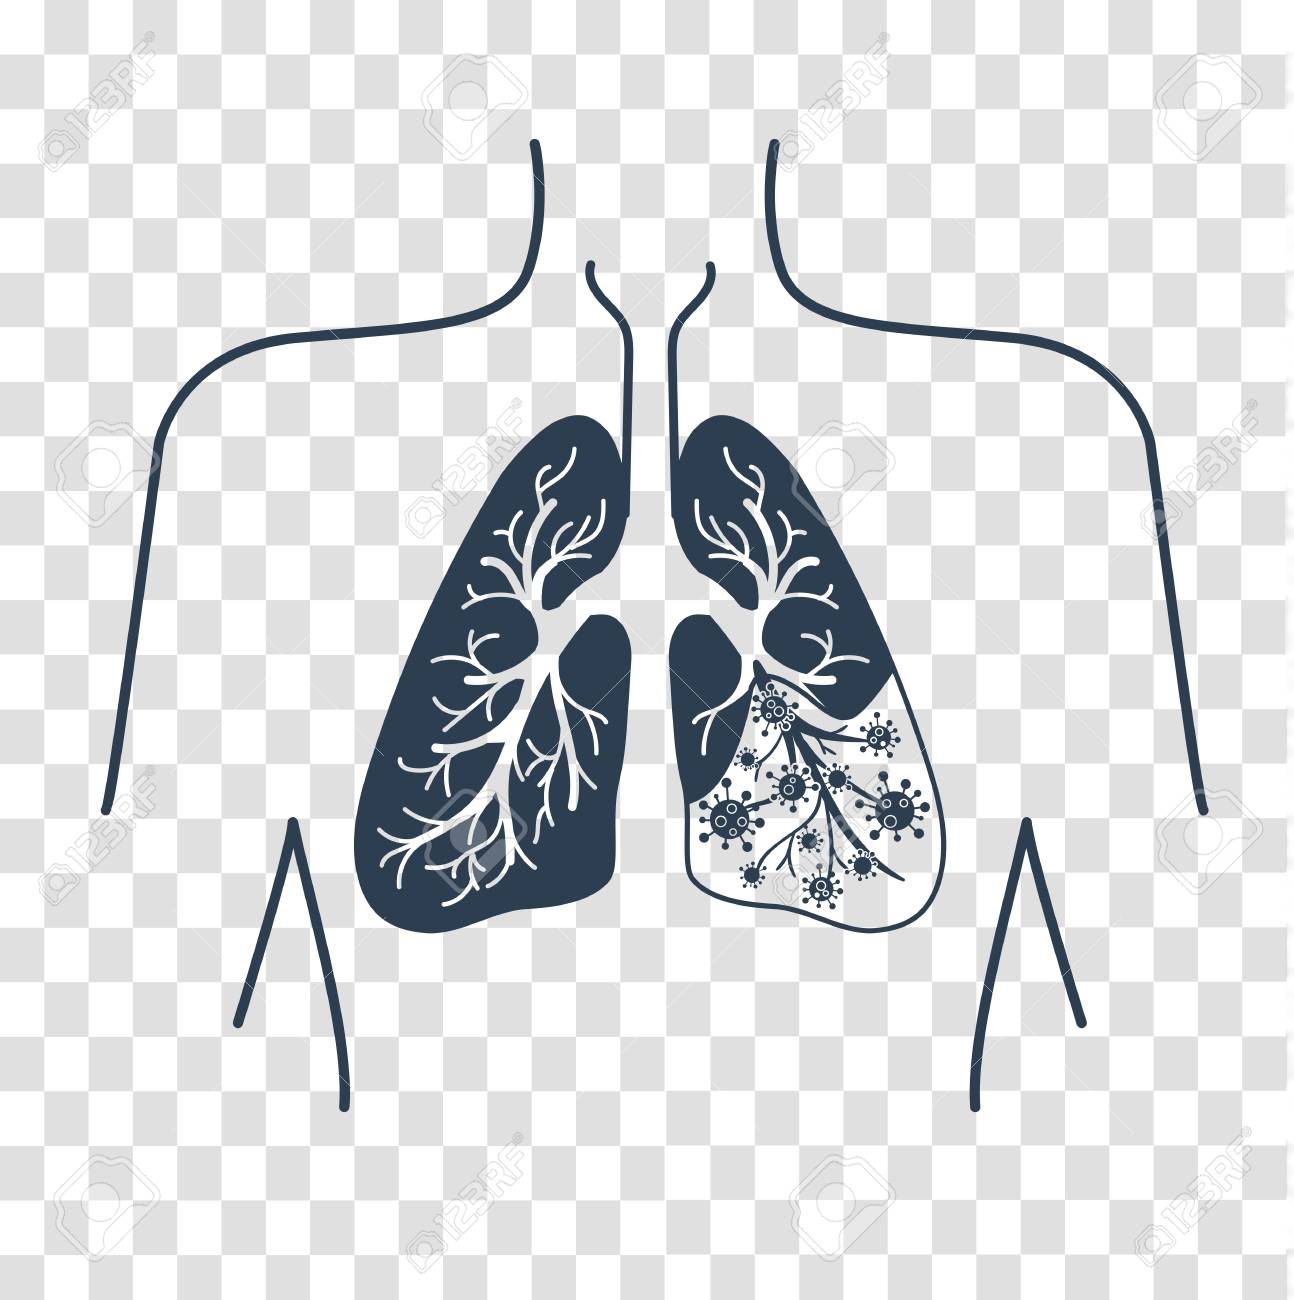 Icon Of Lung Disease, Pneumonia, Asthma, Cancer In The Form Of ...